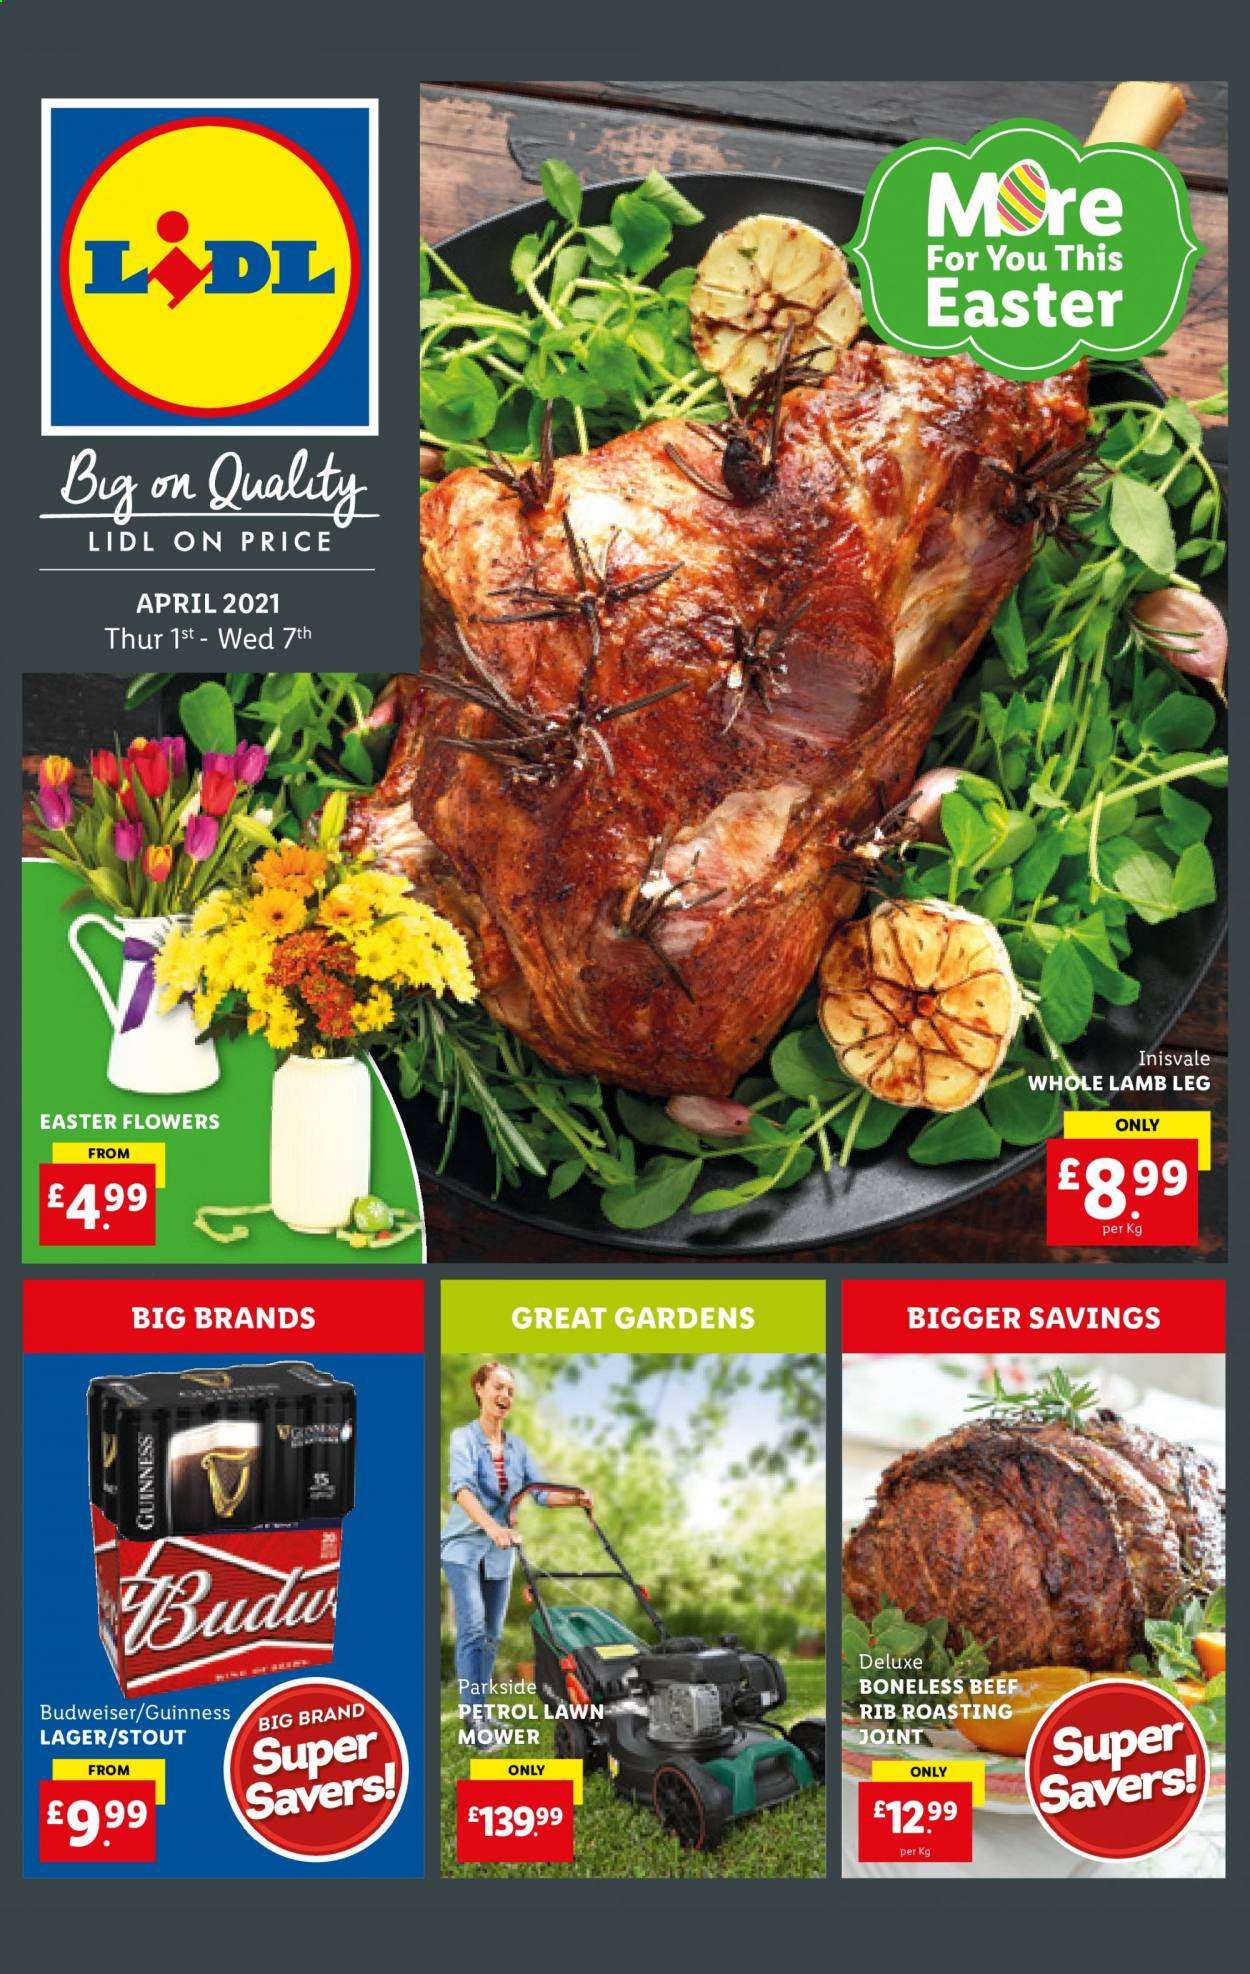 Lidl offer  - 1.4.2021 - 7.4.2021 - Sales products - Budweiser, beer, Guinness, Lager, lamb meat, lamb leg, whole lamb, Parkside, lawn mower, petrol lawn mower, flowers. Page 1.